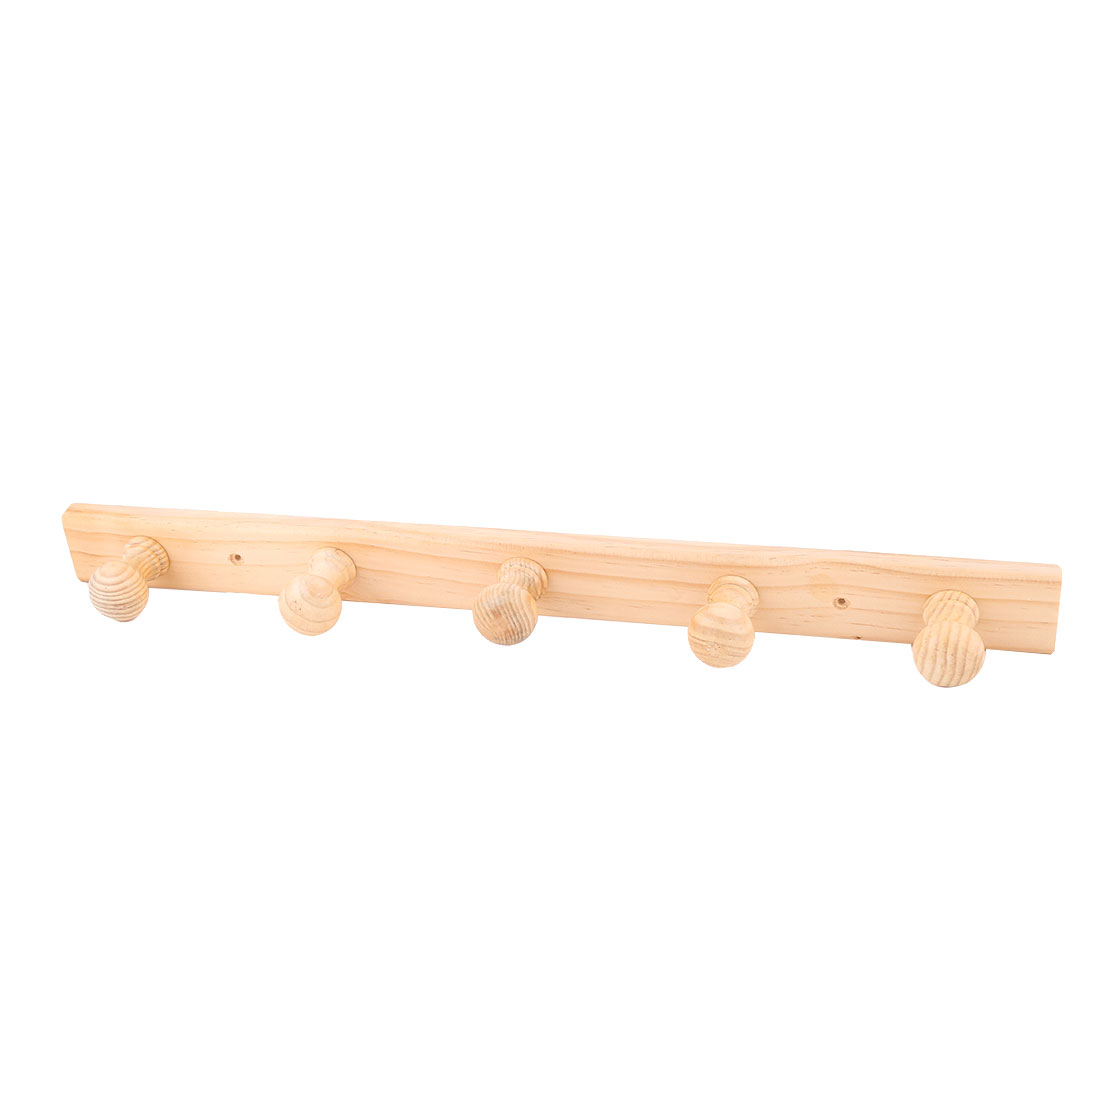 Household Bathroom Wooden 5 Hooks Wall Mounted Towel Clothes Hanging Rack